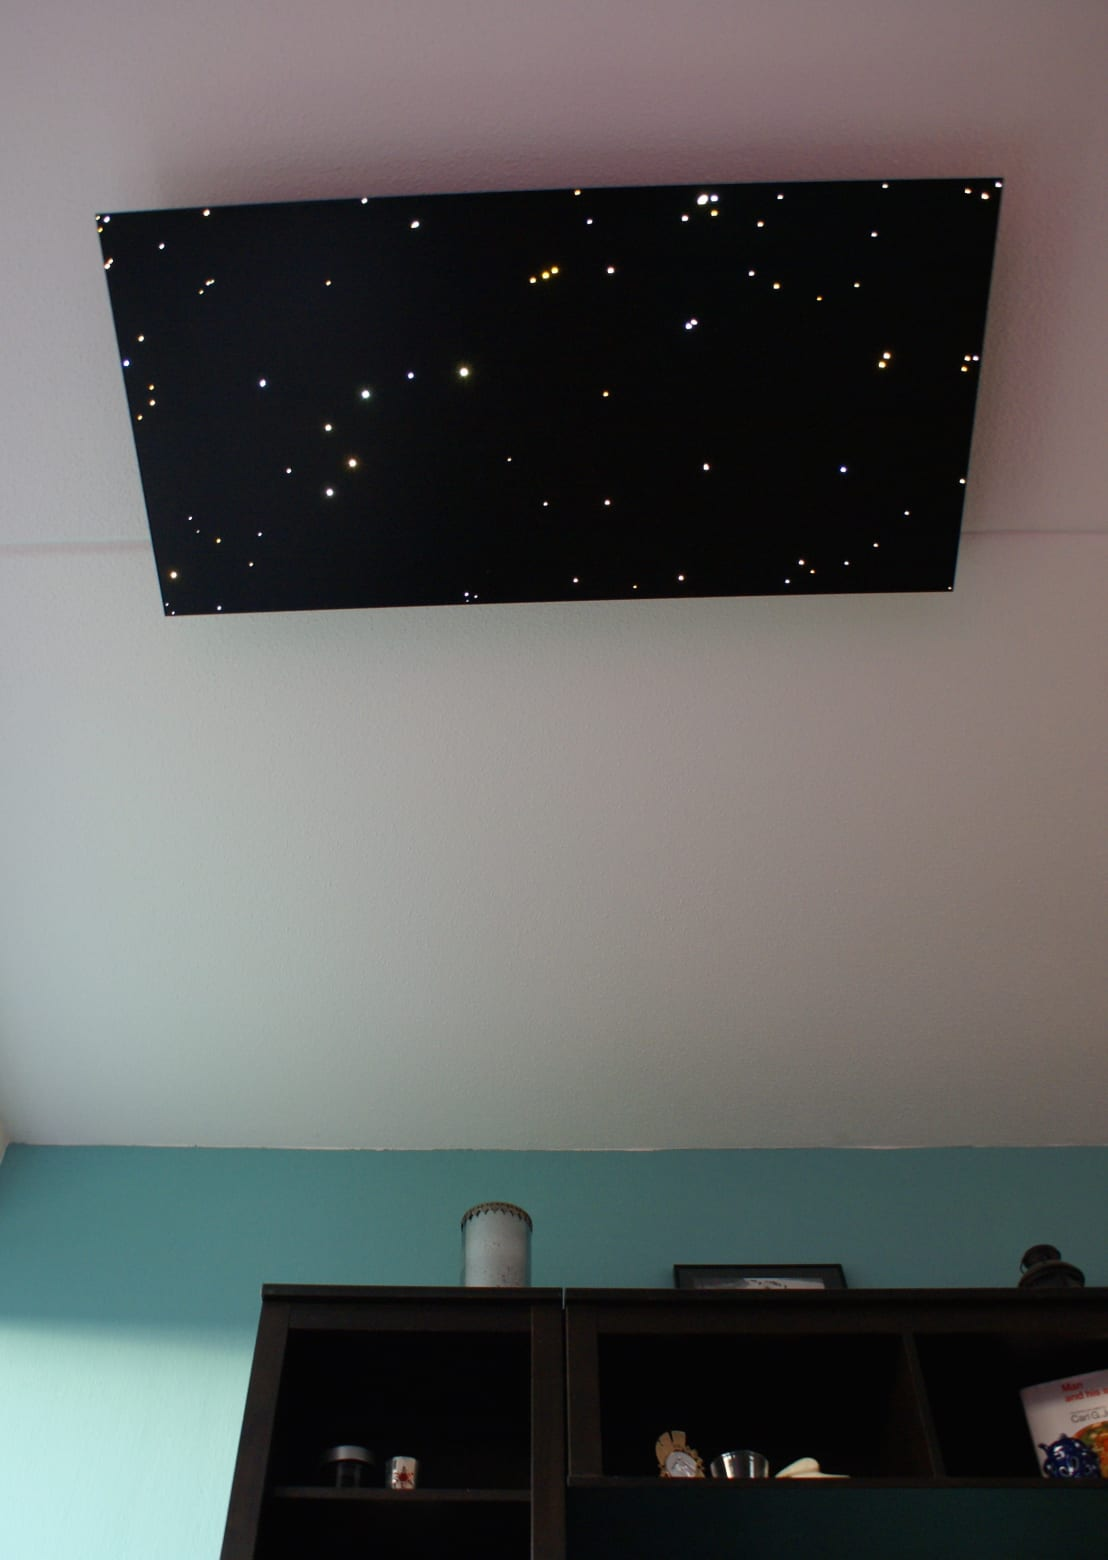 Fiber optic ceiling light star panels shooting falling stars fiber optic ceiling light star panels shooting falling stars twinkling sauna spa wellness resort starry night sky fibre lights acoustic boards tiles dailygadgetfo Image collections